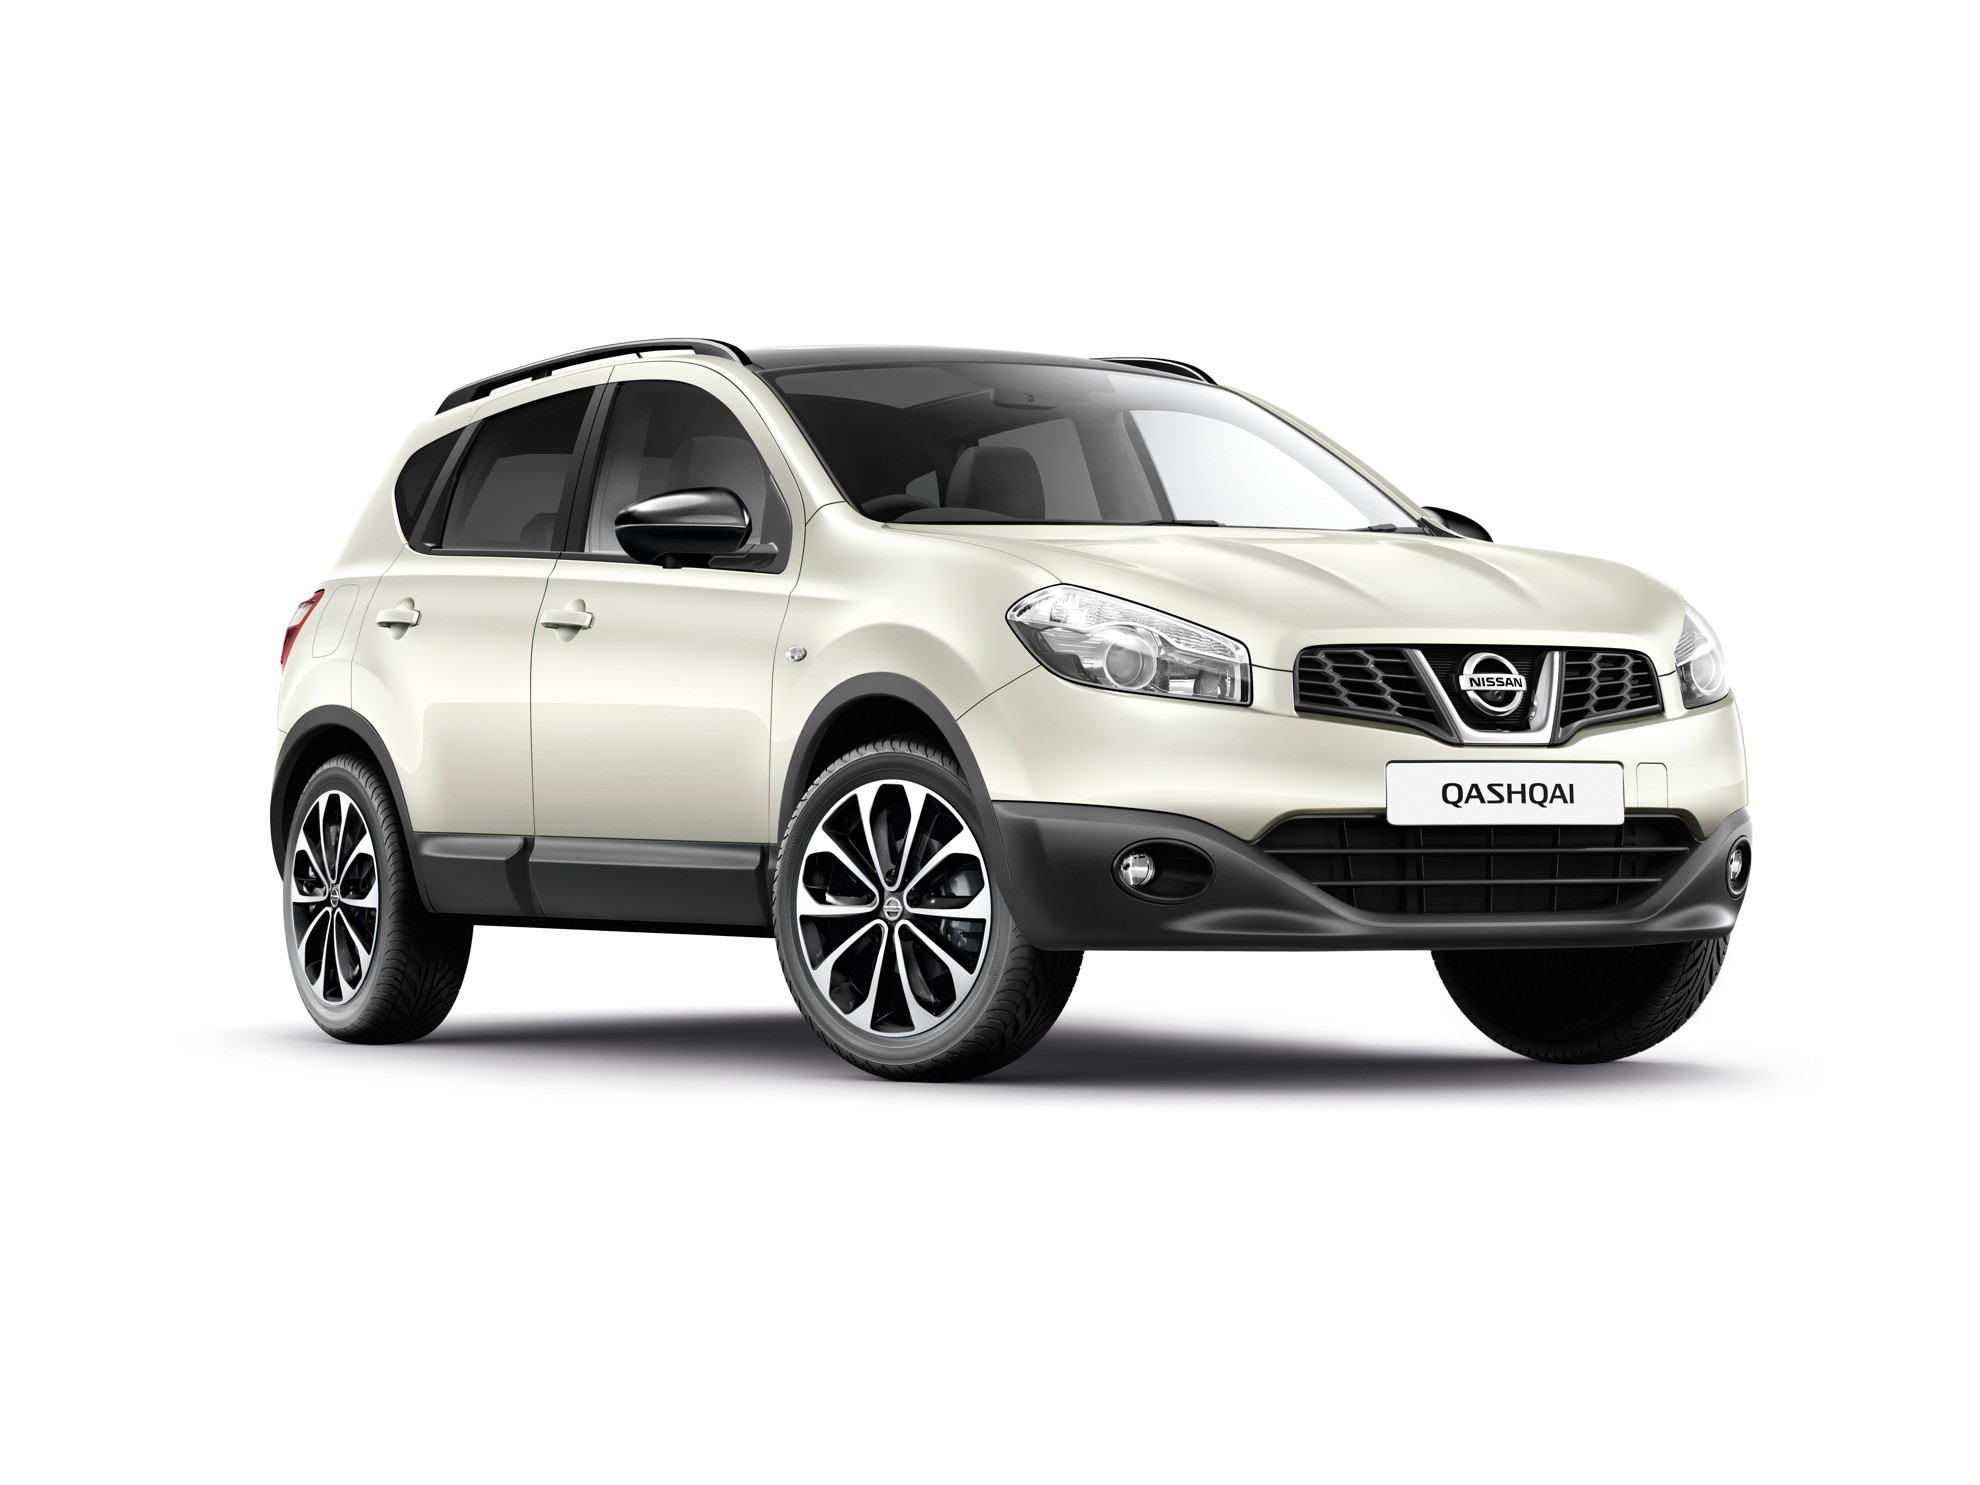 2013 nissan qashqai pictures information and specs. Black Bedroom Furniture Sets. Home Design Ideas